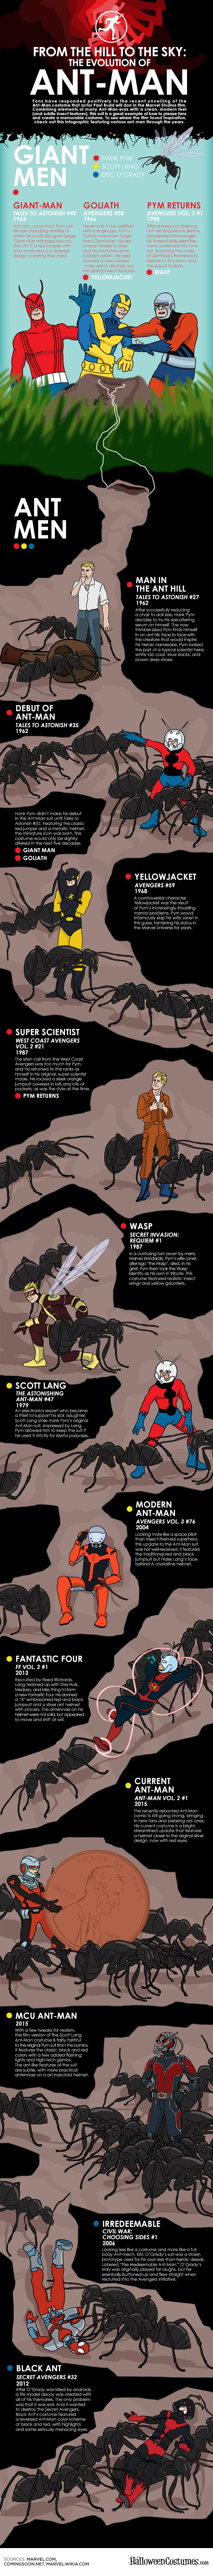 From The Hill To The Sky The Evolution Of Ant Man Infographic